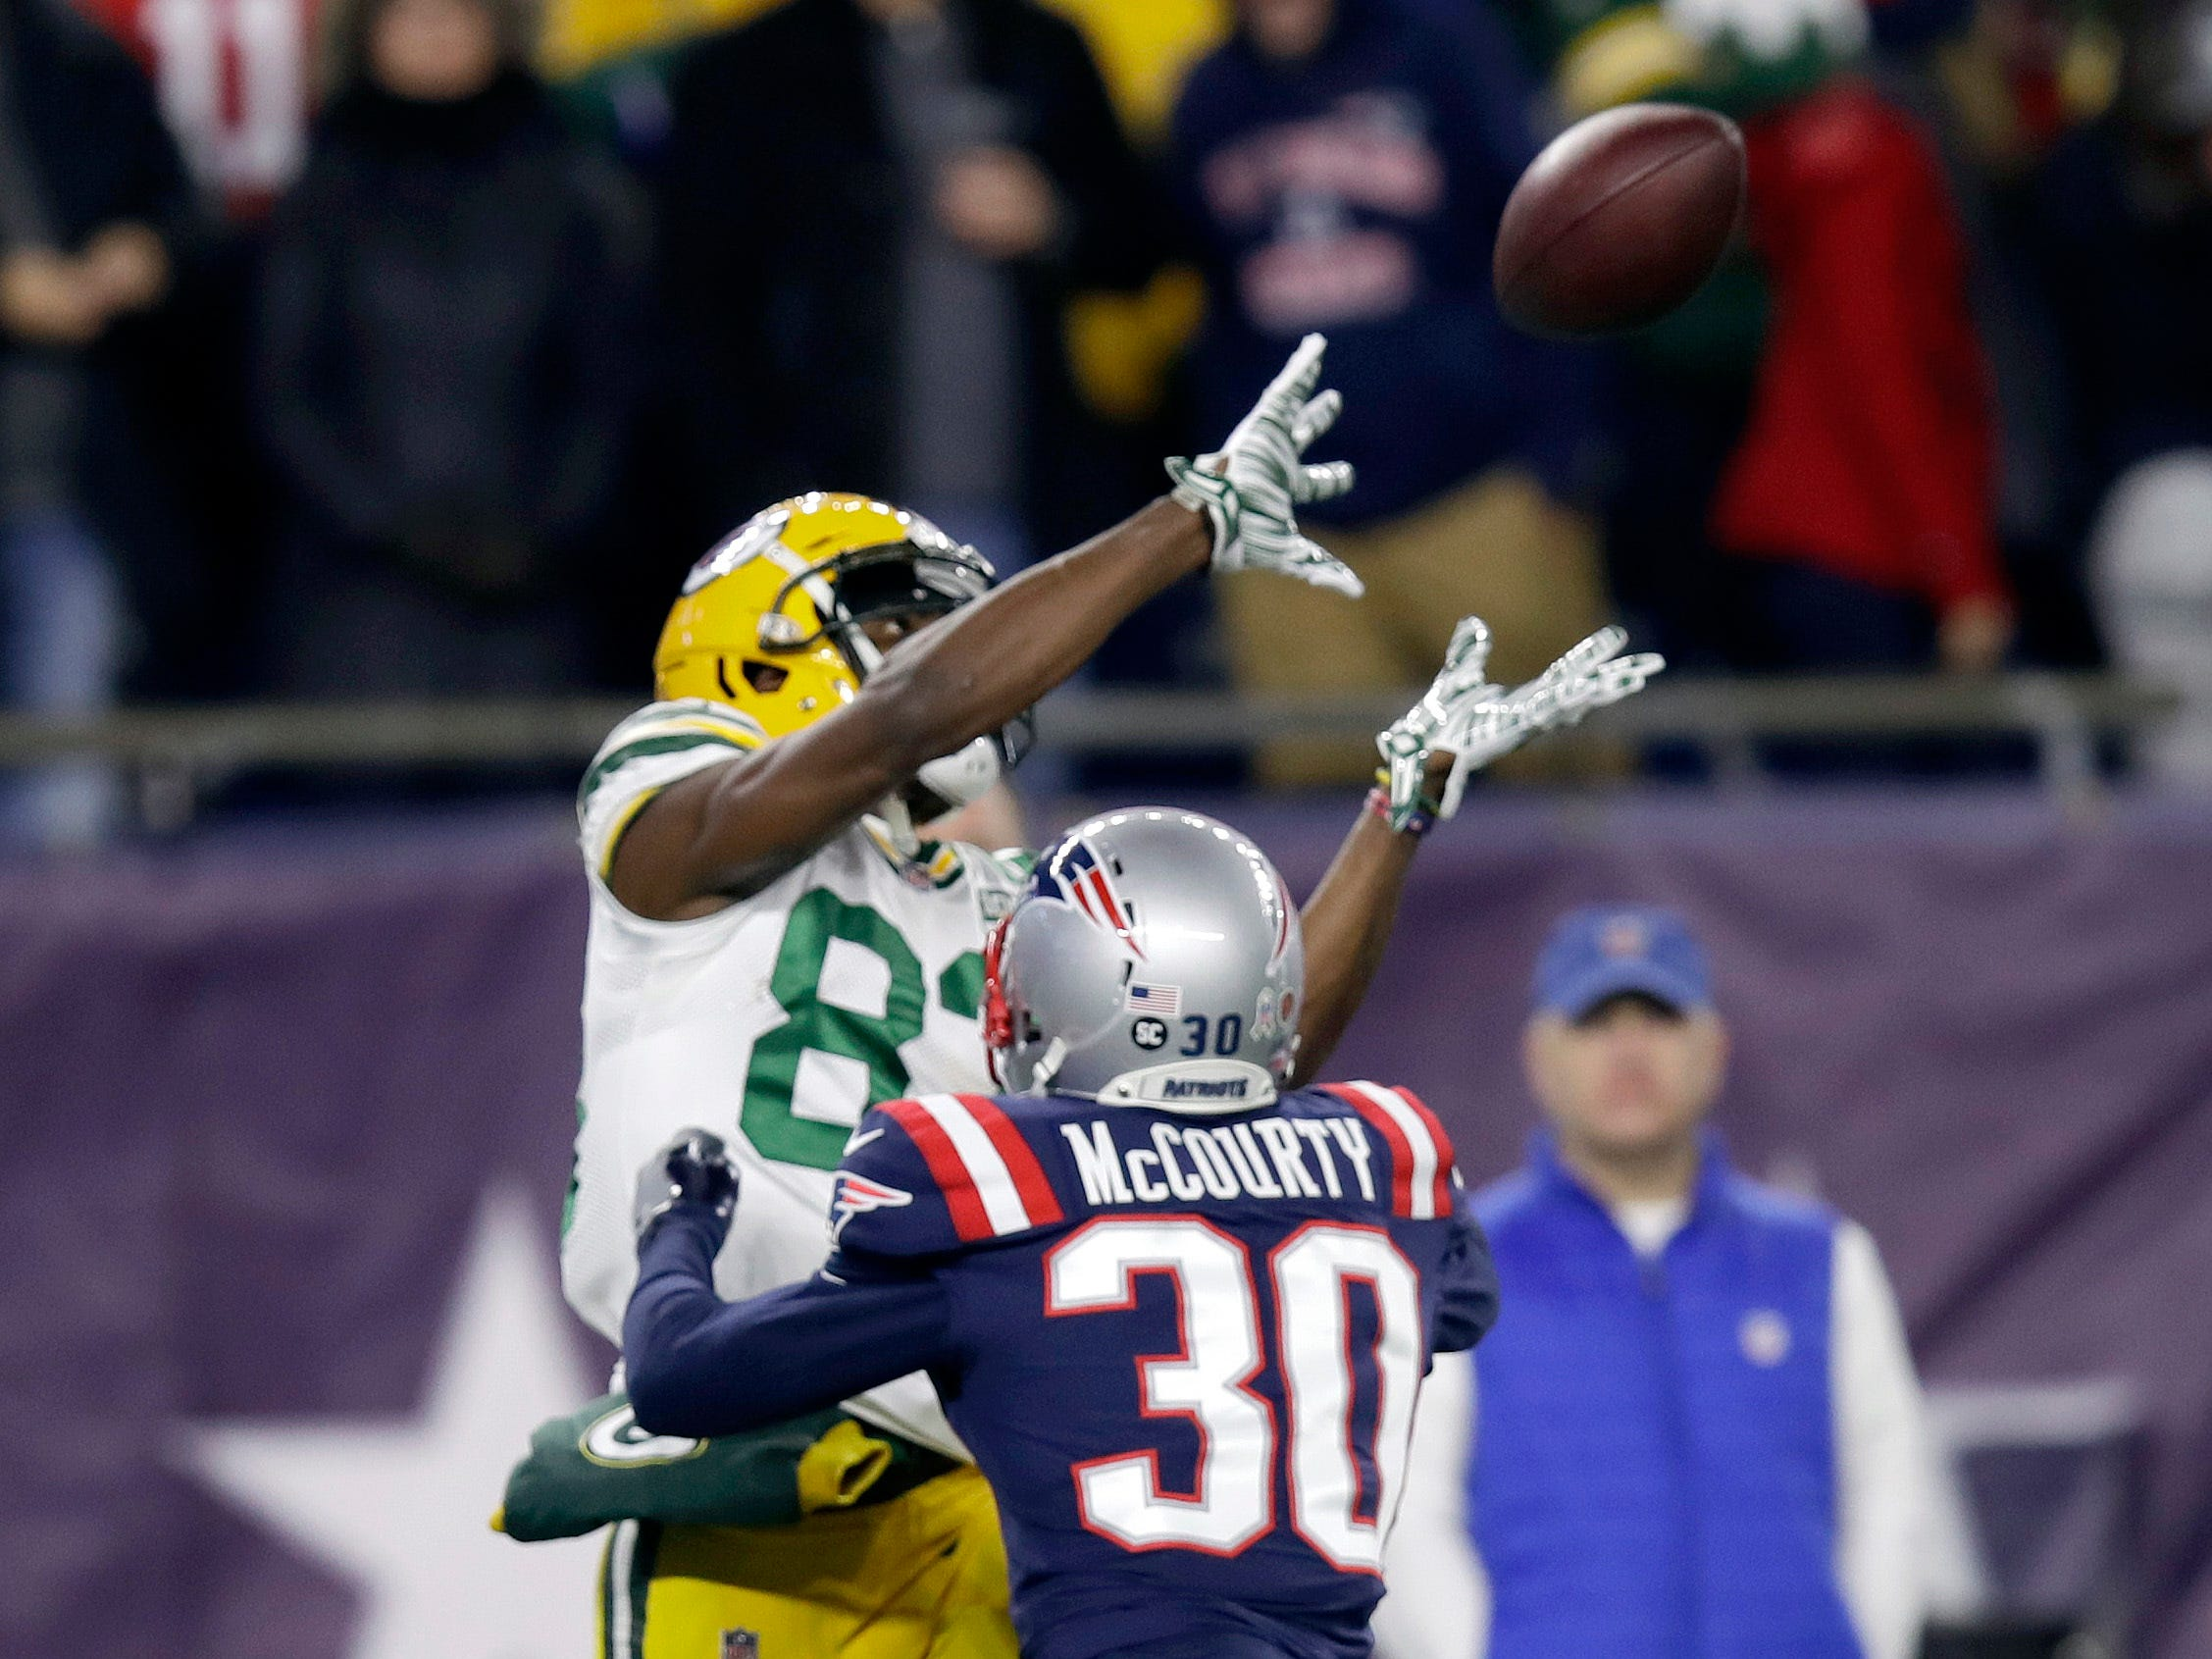 New England Patriots defensive back Jason McCourty (30) breaks up a pass intended for Green Bay Packers wide receiver Marquez Valdes-Scantling during the first half of an NFL football game, Sunday, Nov. 4, 2018, in Foxborough, Mass. (AP Photo/Charles Krupa)